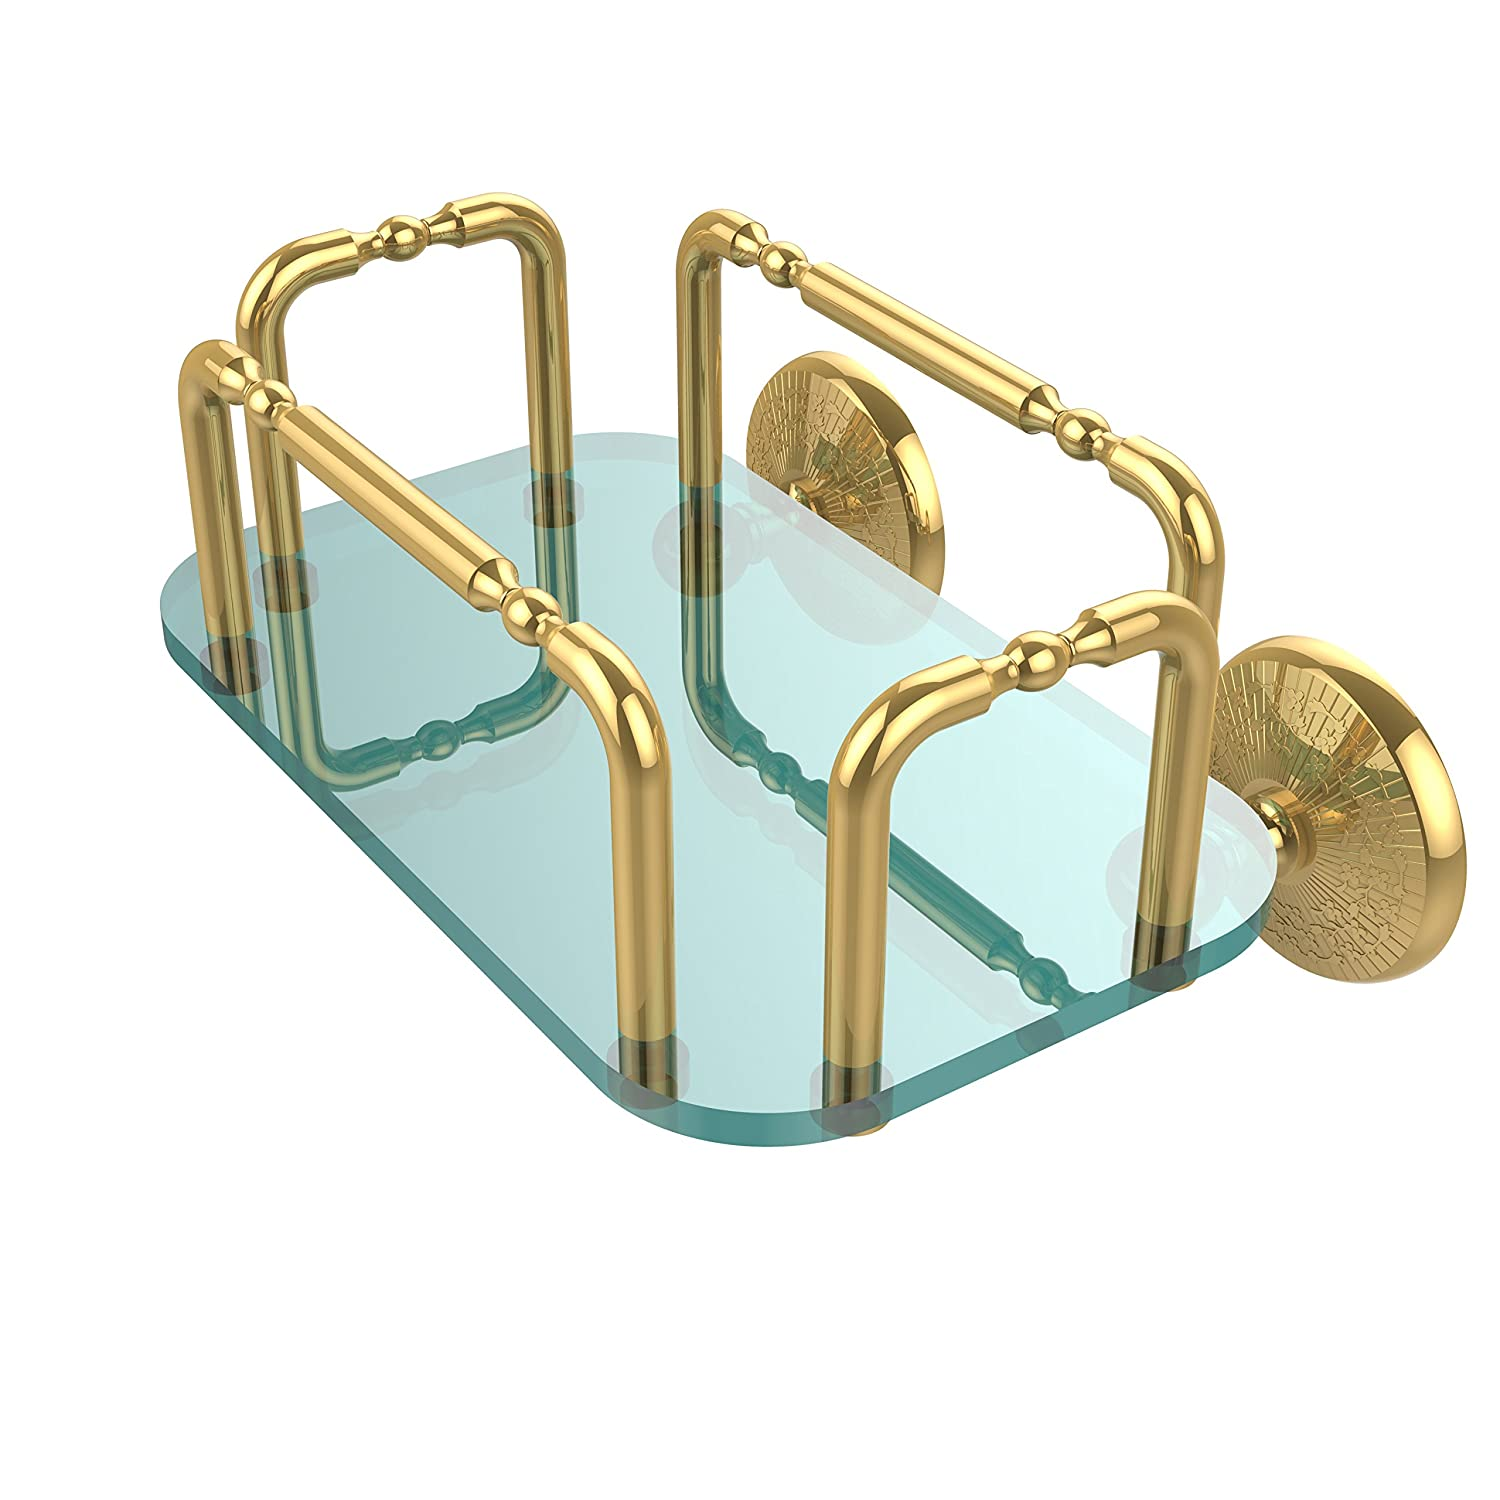 Allied Brass GT-2-MC-PB Monte Carlo Wall Mounted Guest Towel Holder, Polished Brass by Allied Precision Industries B00YE5SGSU 光沢真鍮 光沢真鍮